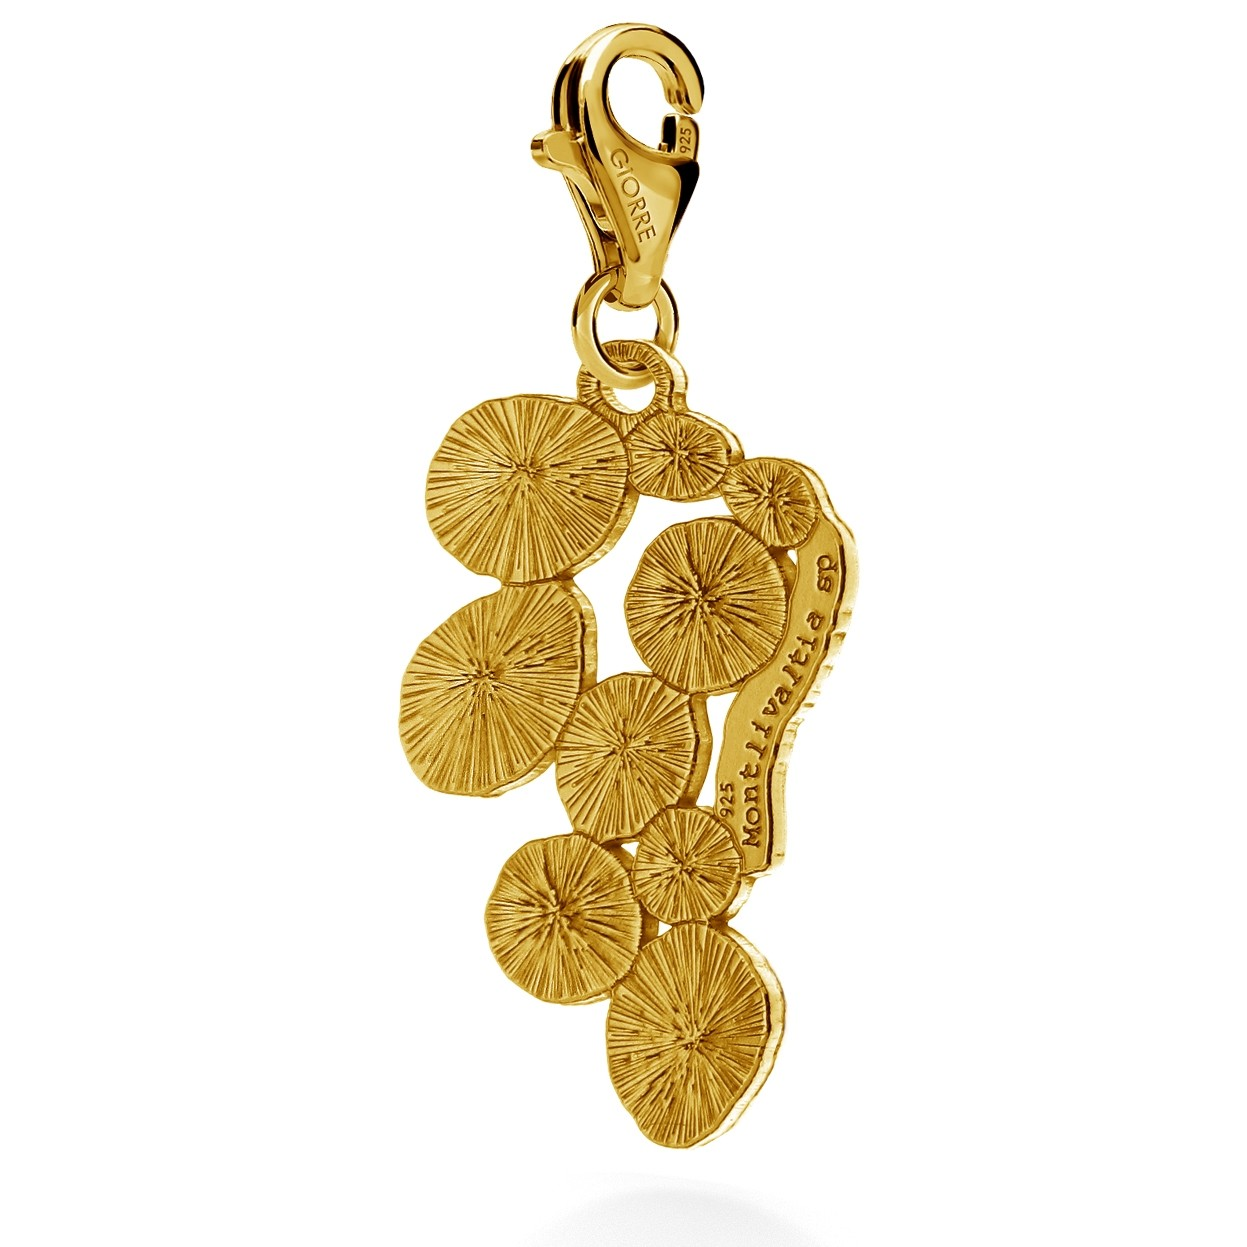 CHARMS 10, MONTLIVALTIA SP, STERLING SILVER RHODIUM OR 24K GOLD PLATED